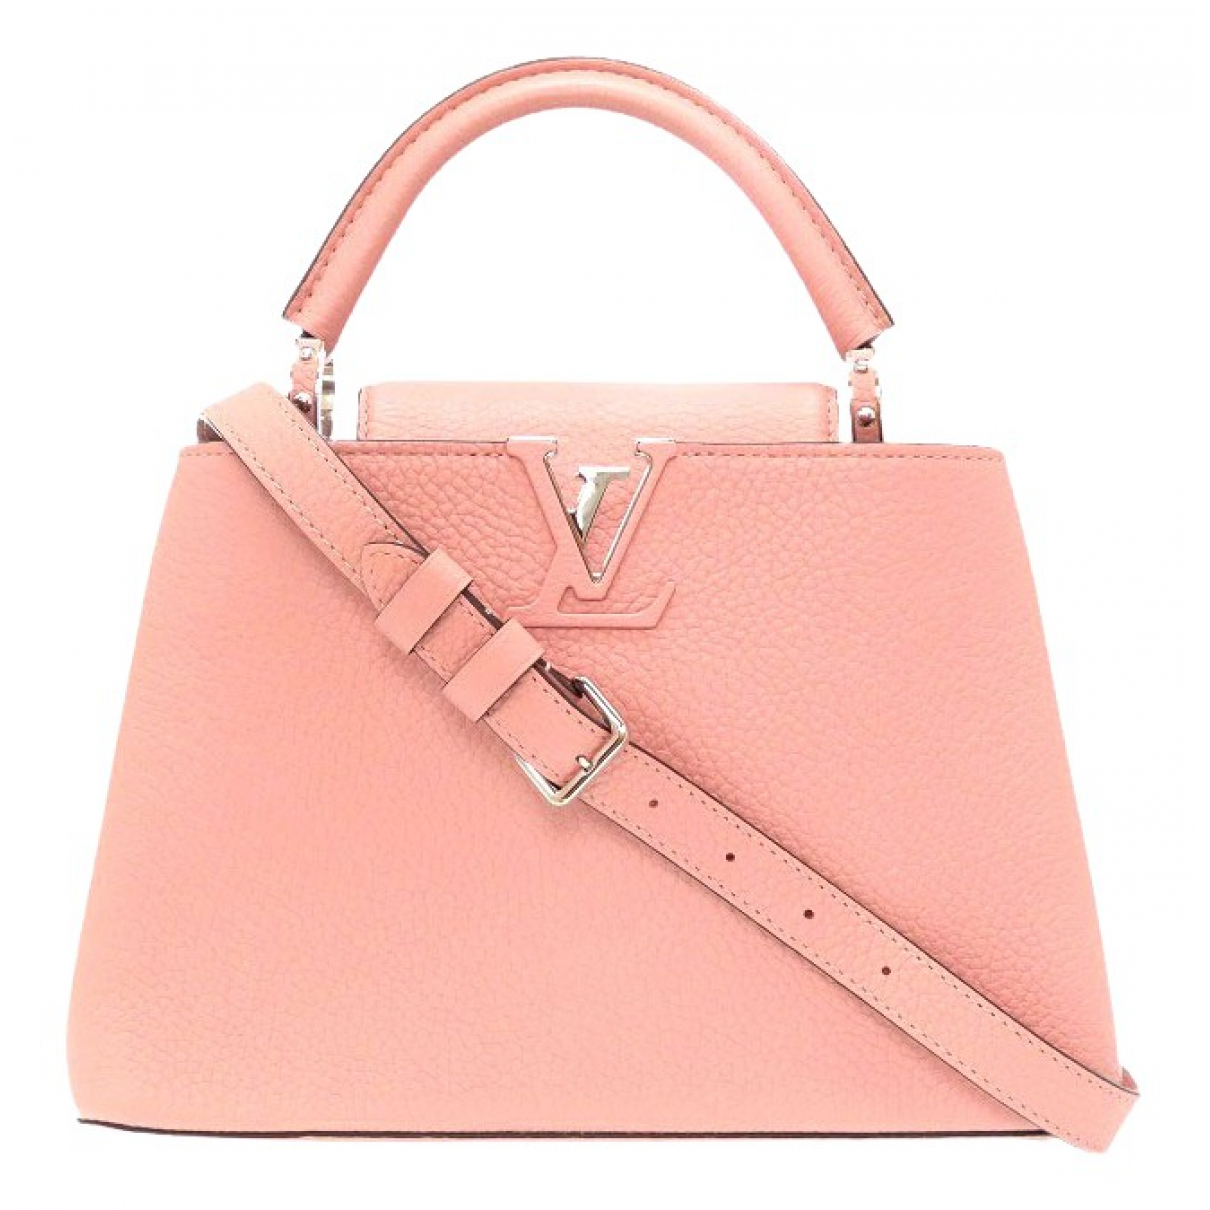 Louis Vuitton Capucines Pink Leather handbag for Women \N